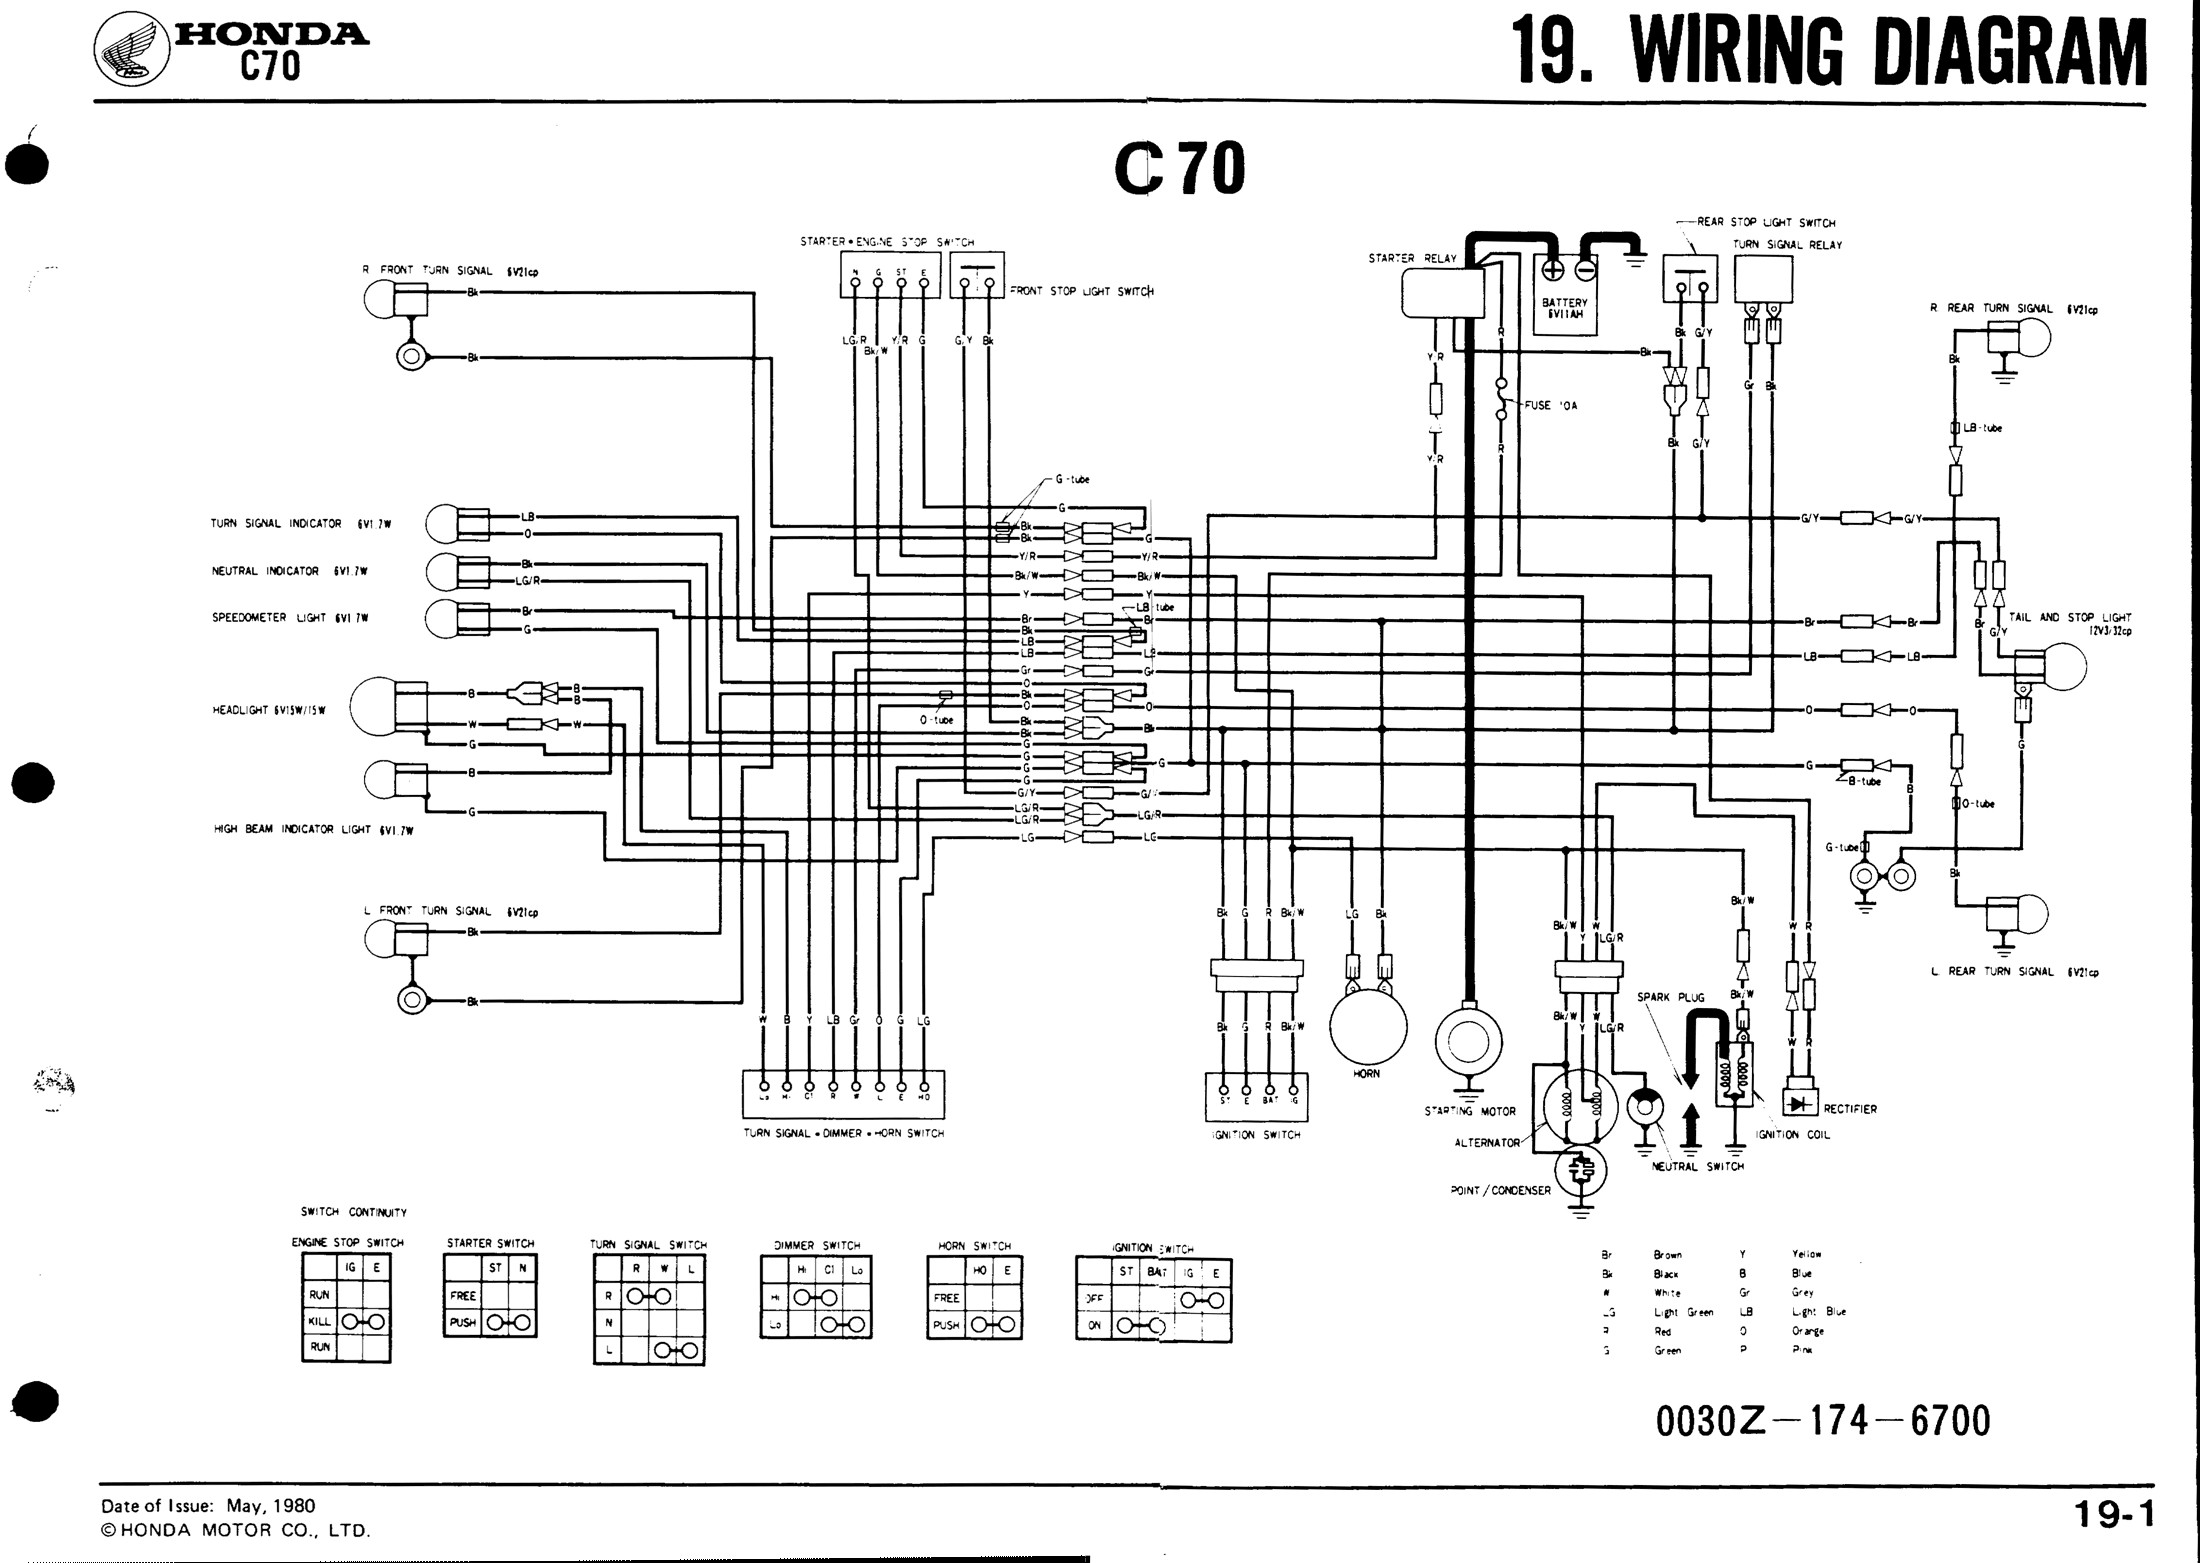 honda c70 engine diagram